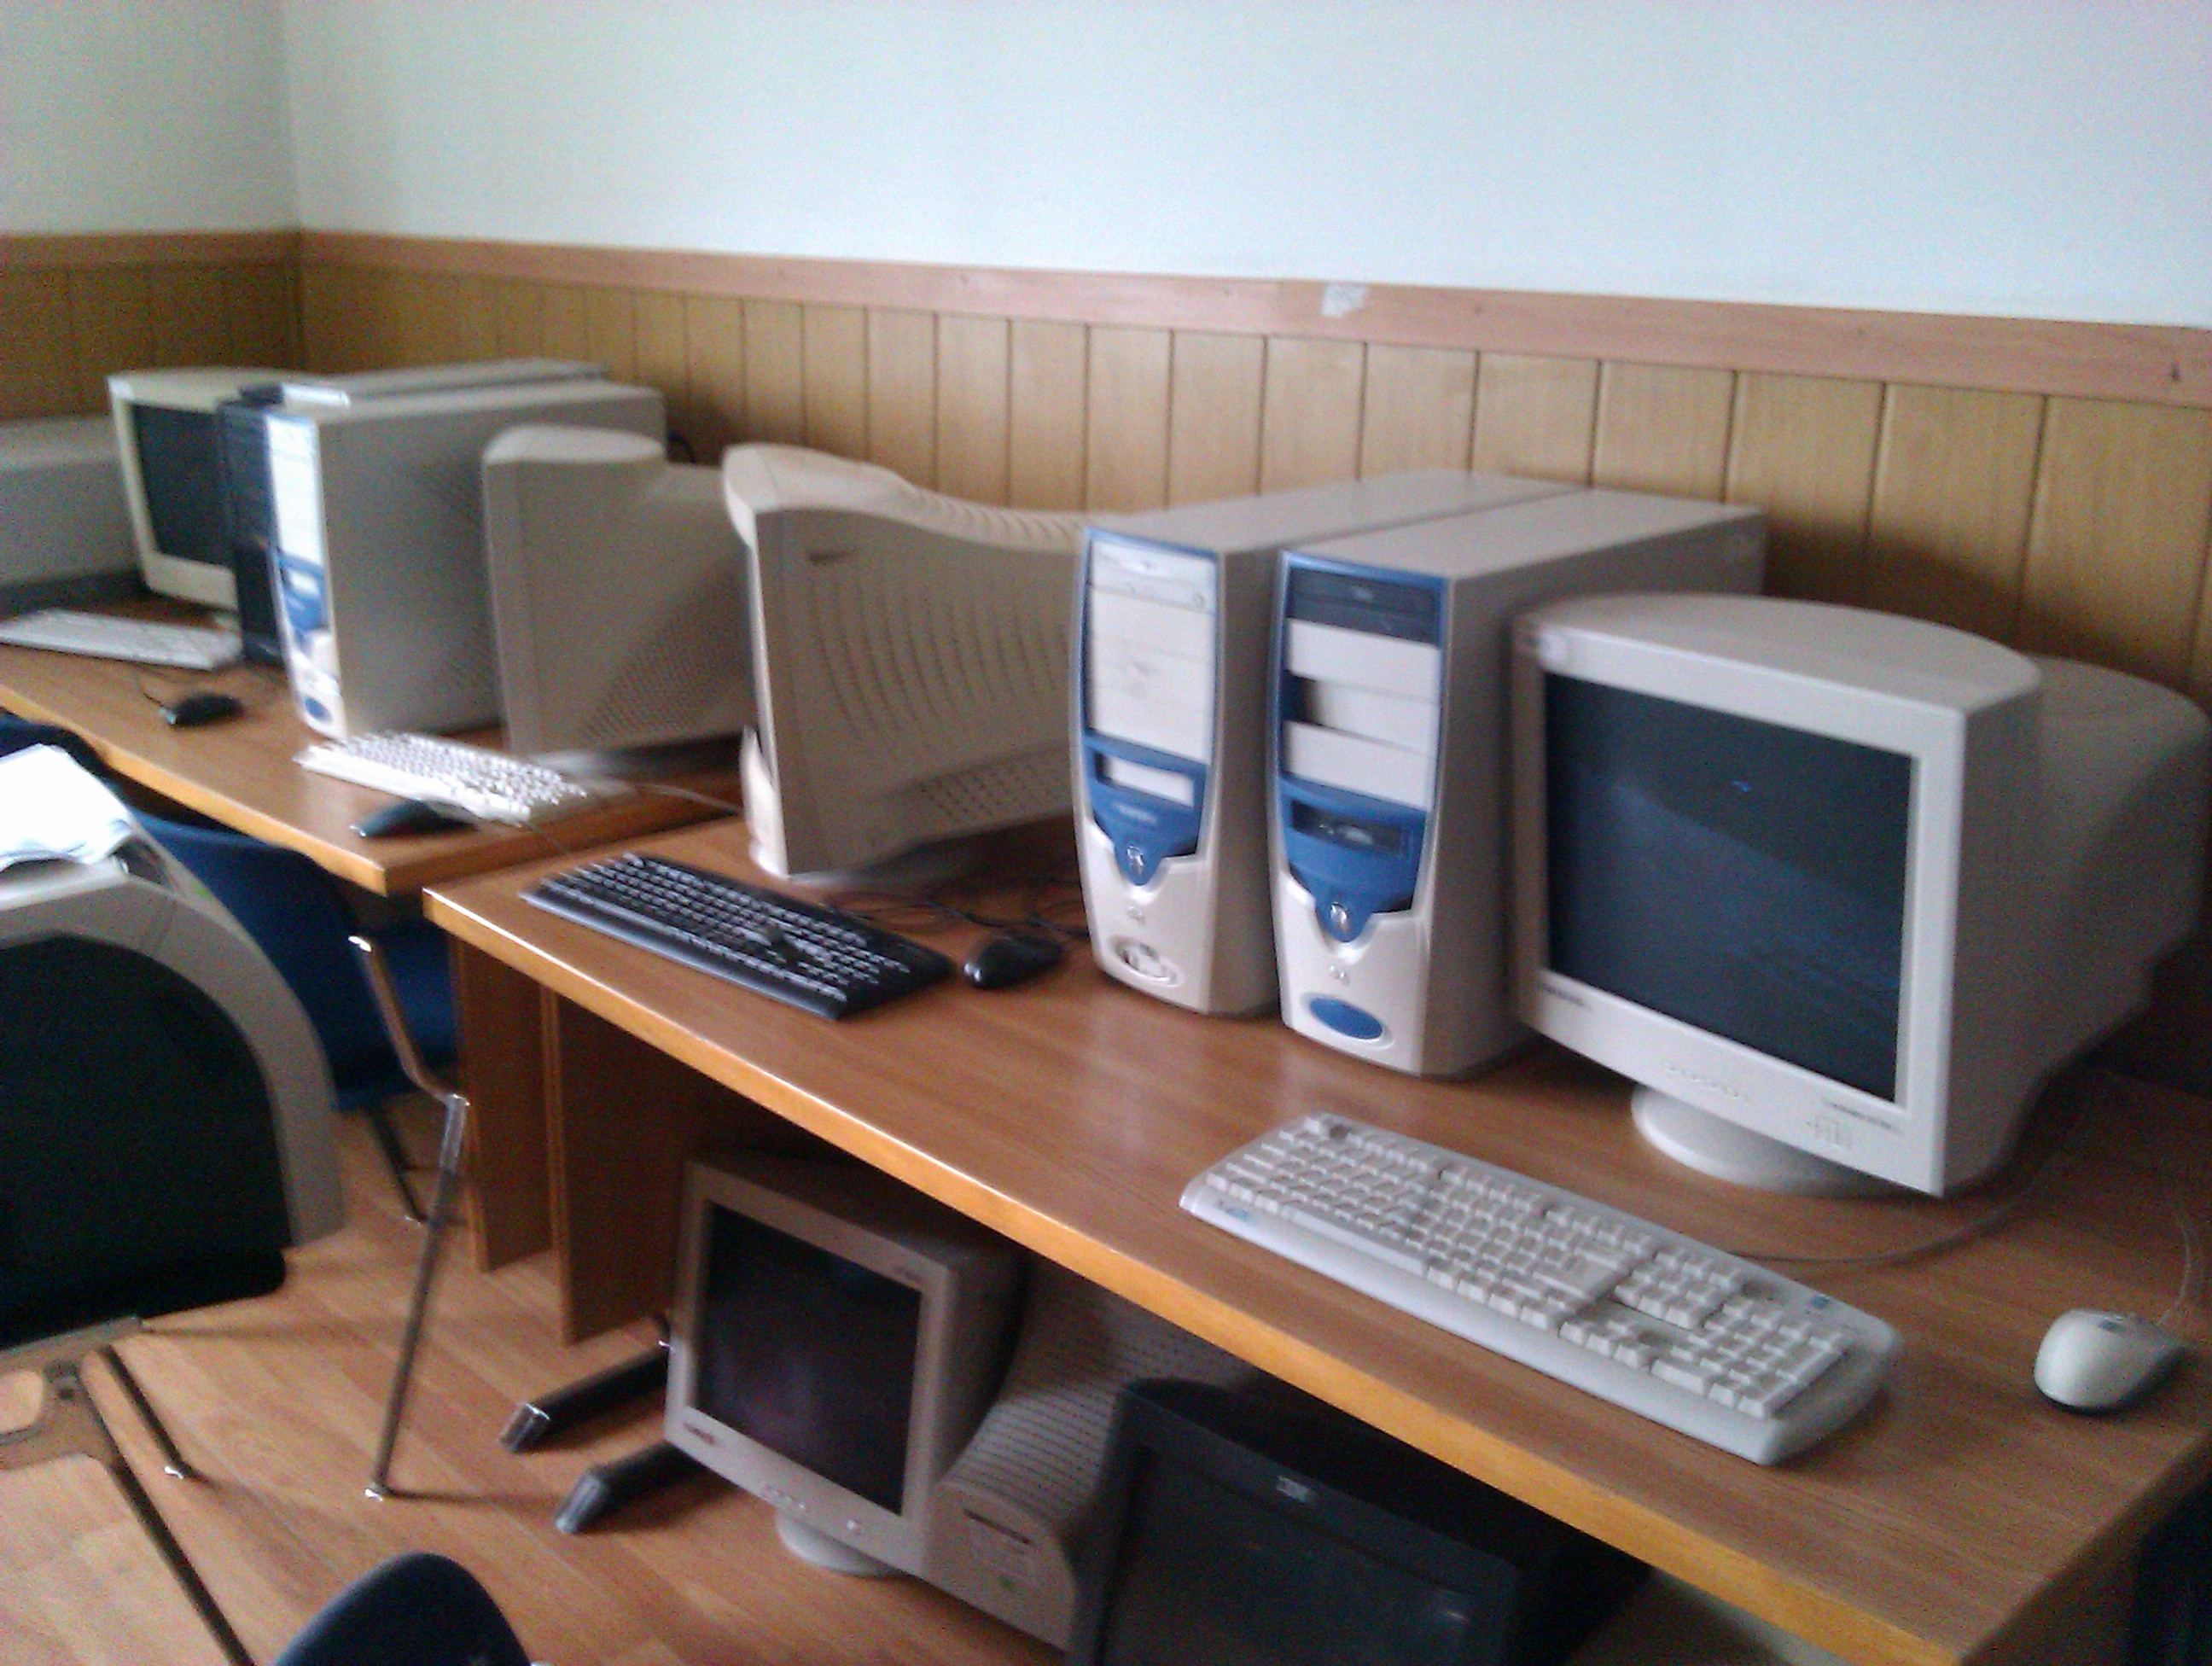 The computer lab with the old computers.